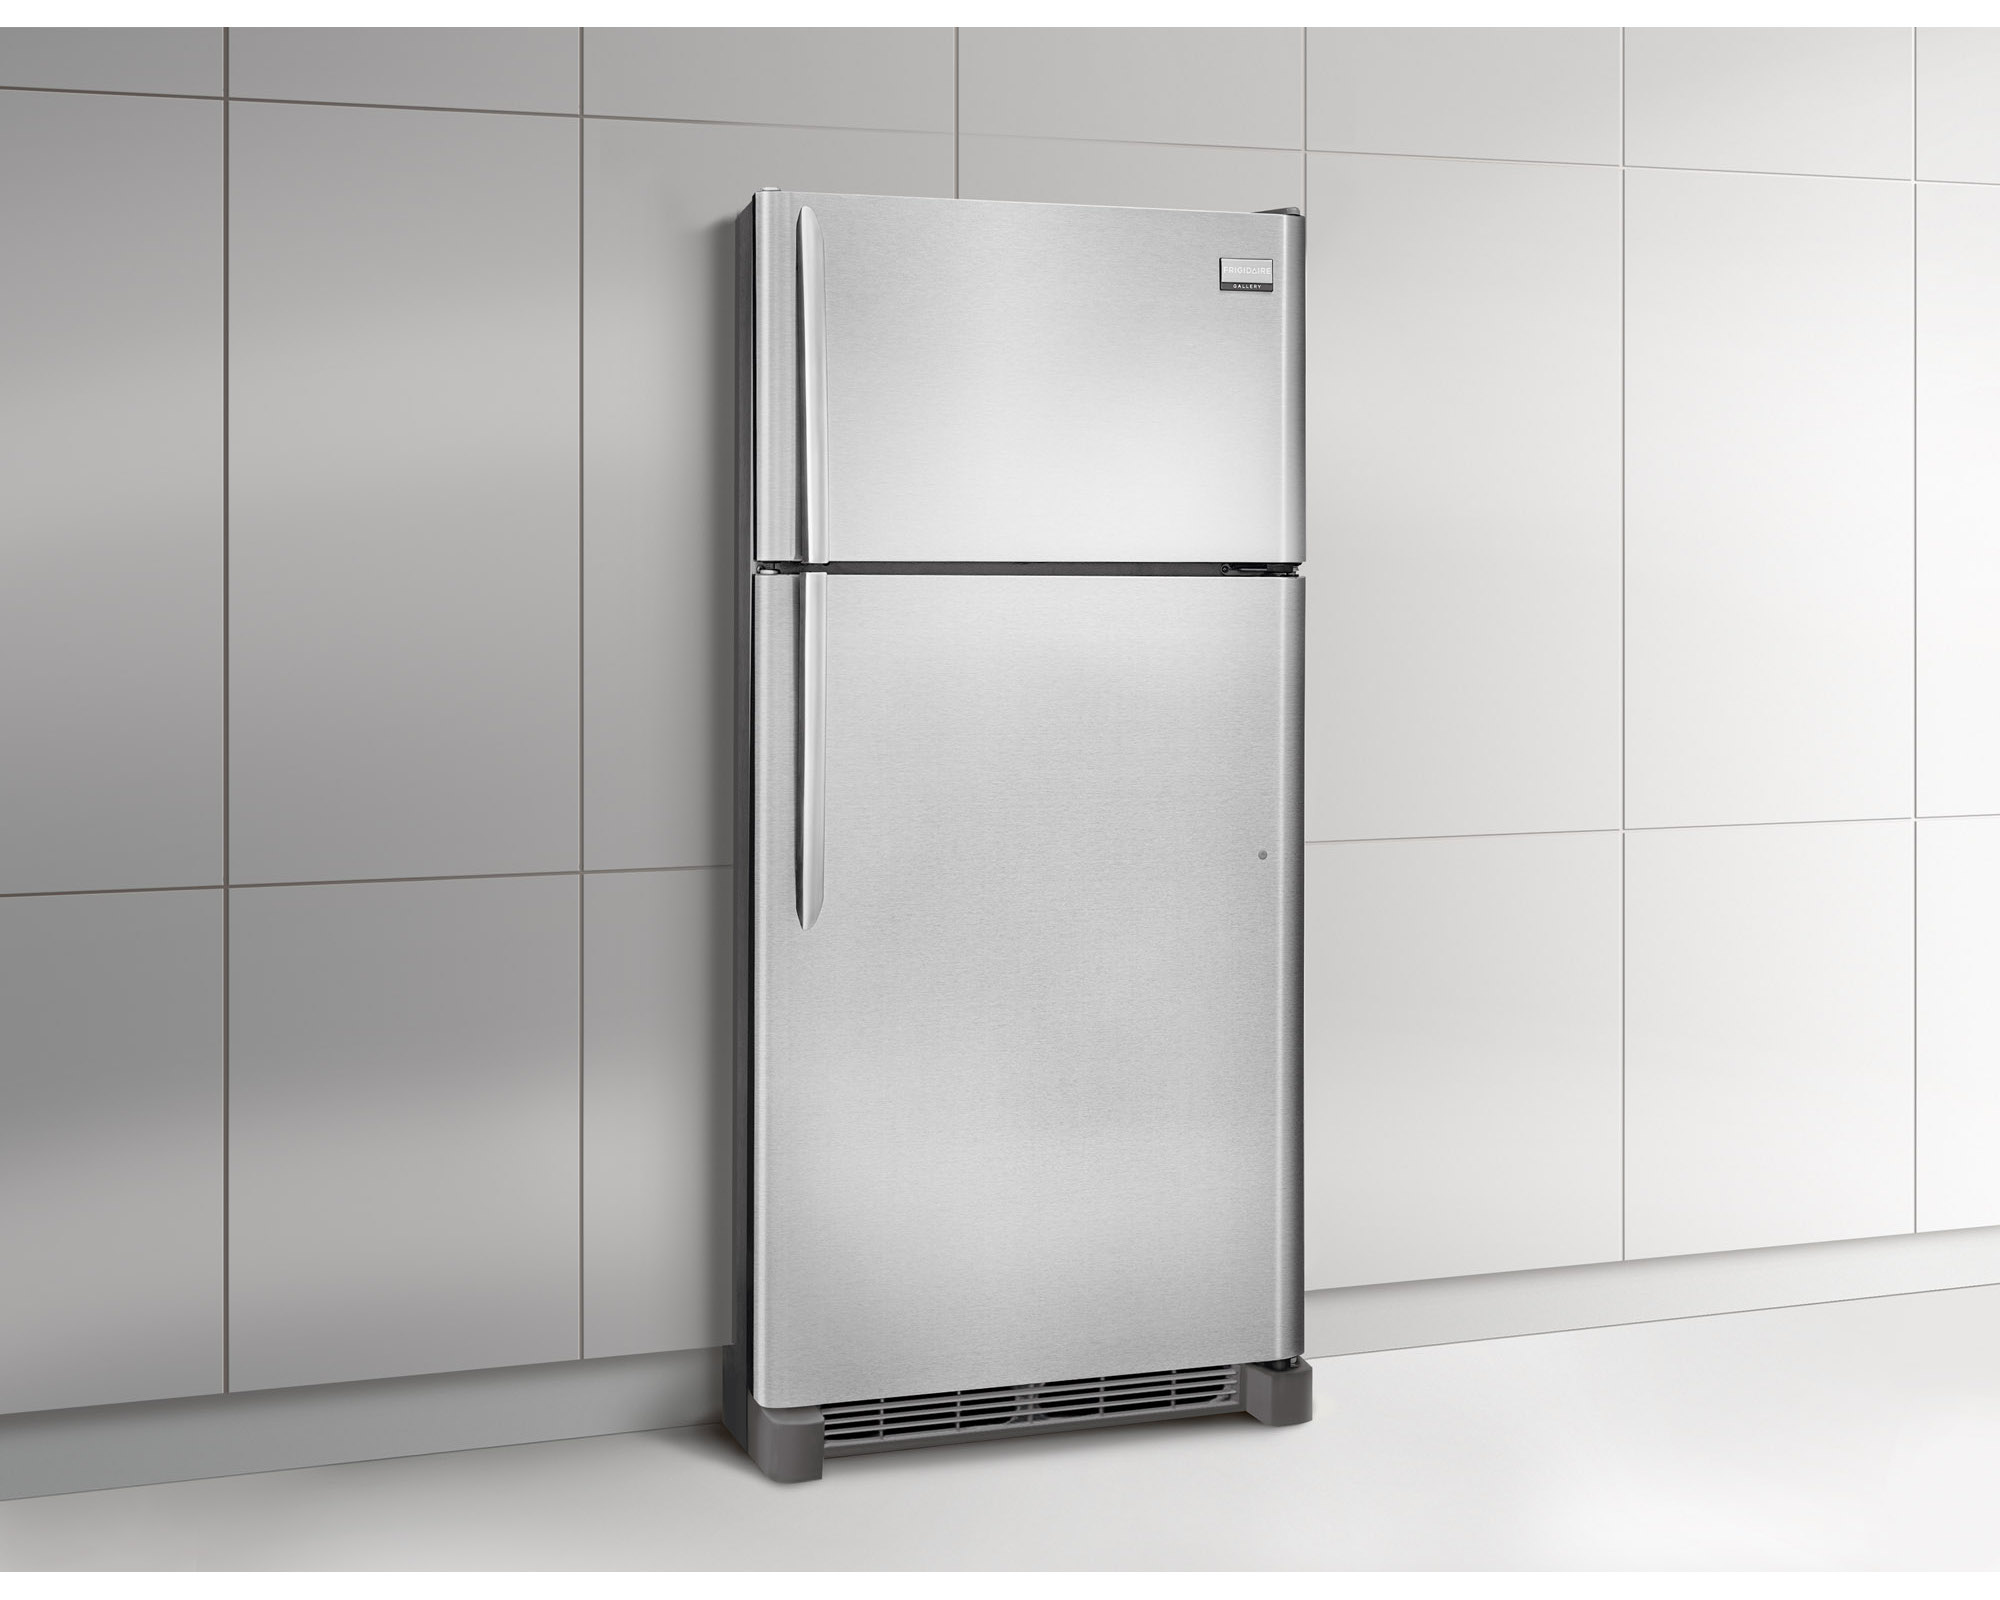 Frigidaire Gallery FGTR1845QF 18 cu. ft. Top Freezer Refrigerator - Stainless Steel